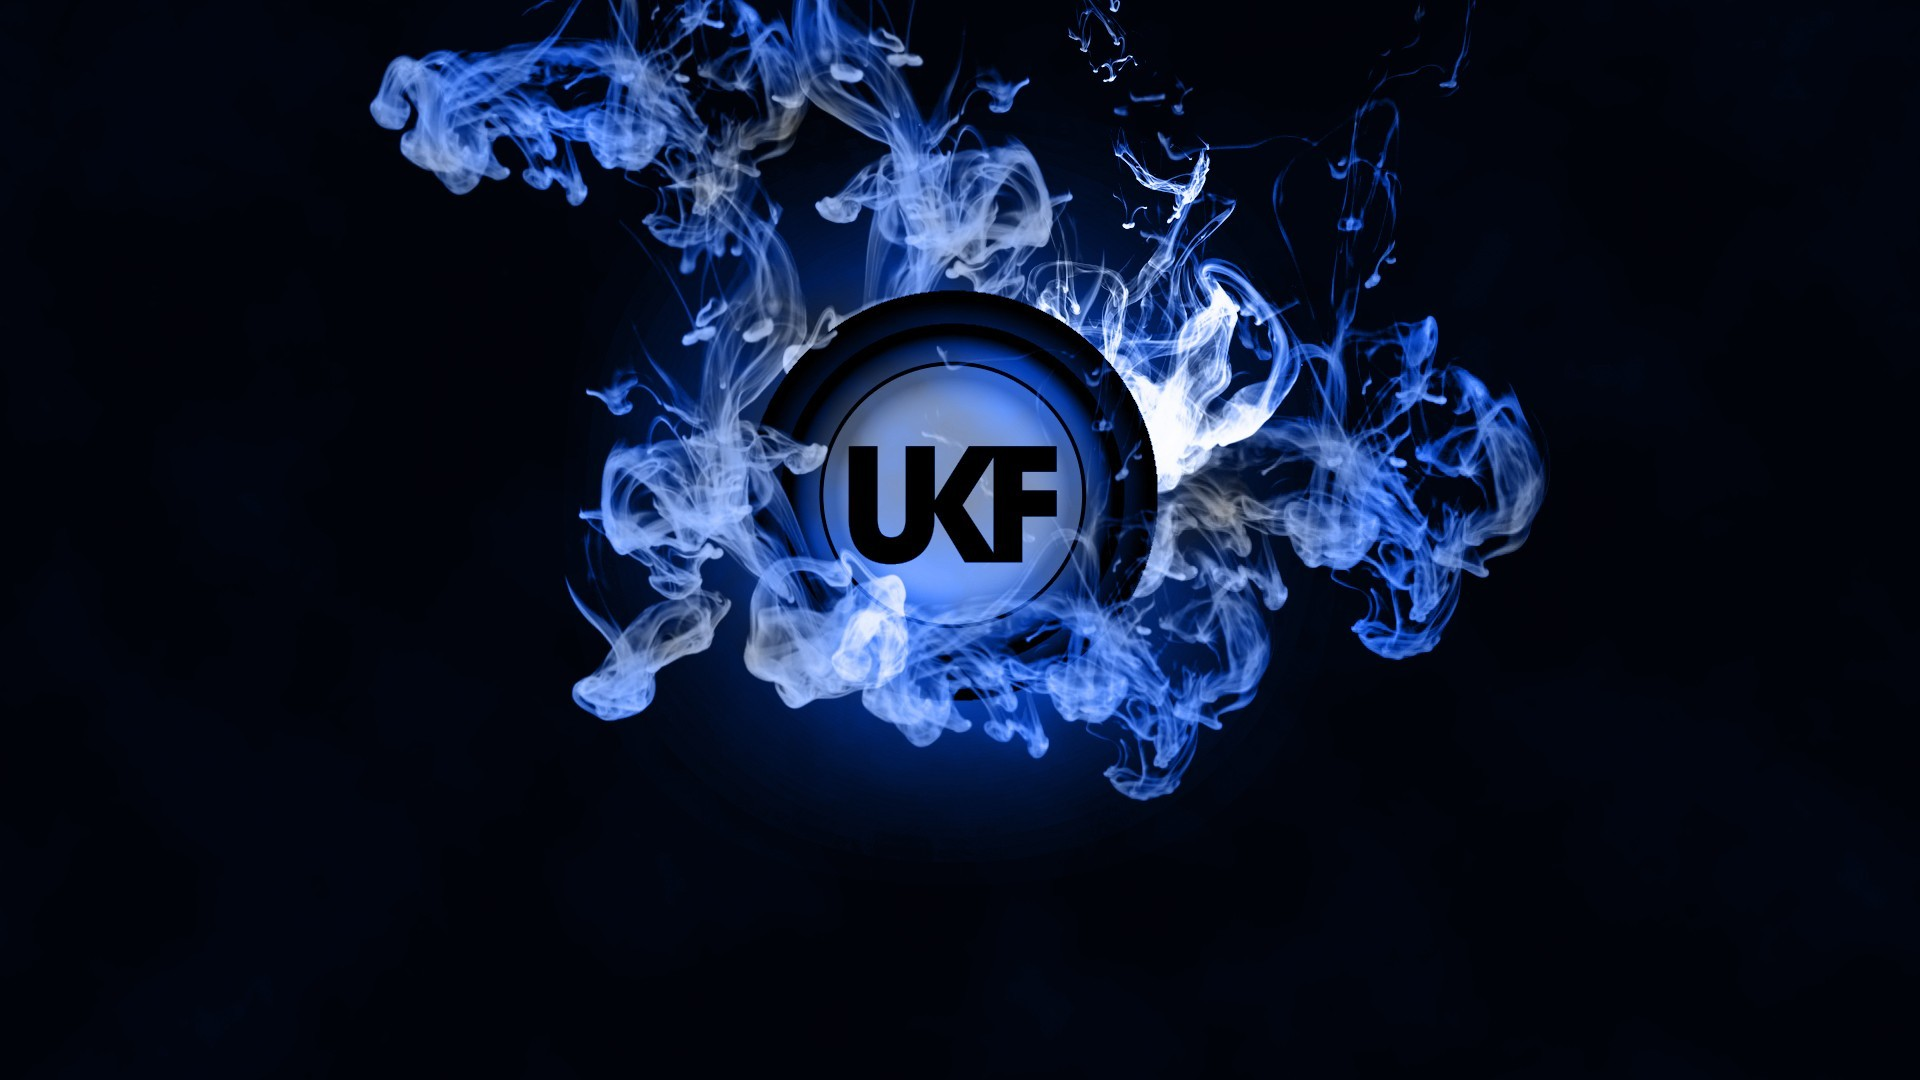 Music youtube dubstep ukf HD Wallpaper